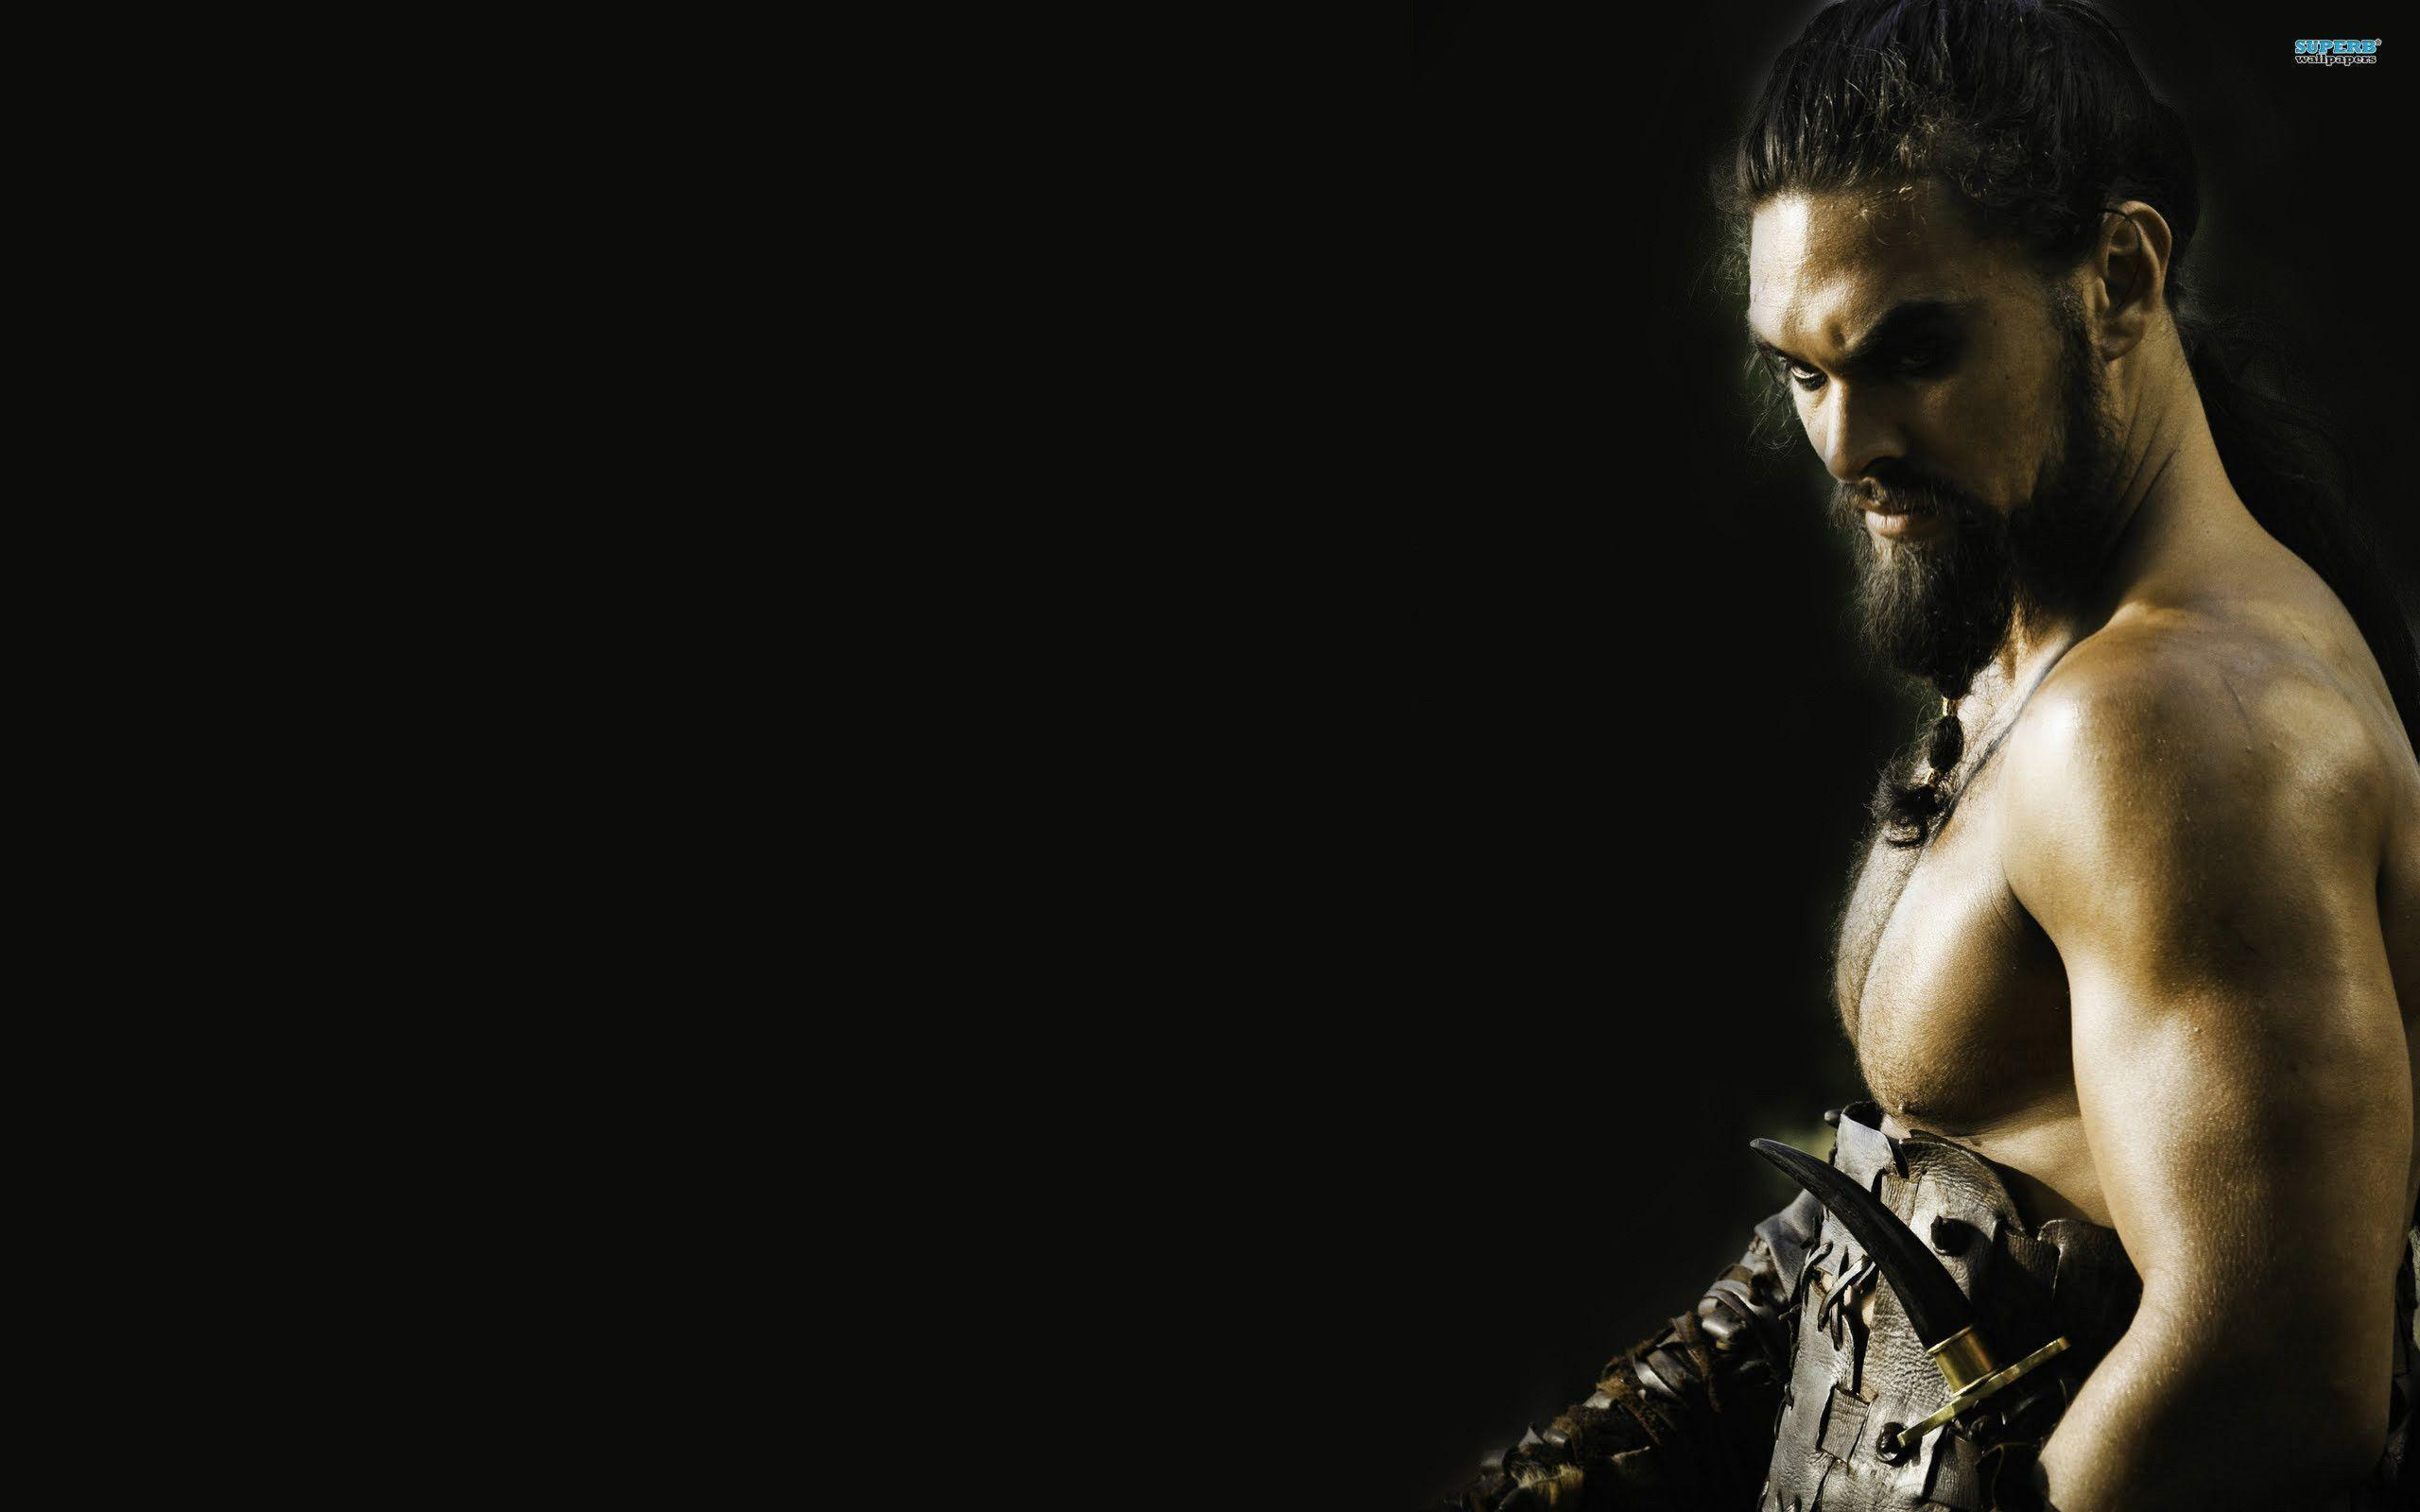 Jason Momoa Wallpapers 2560x1600